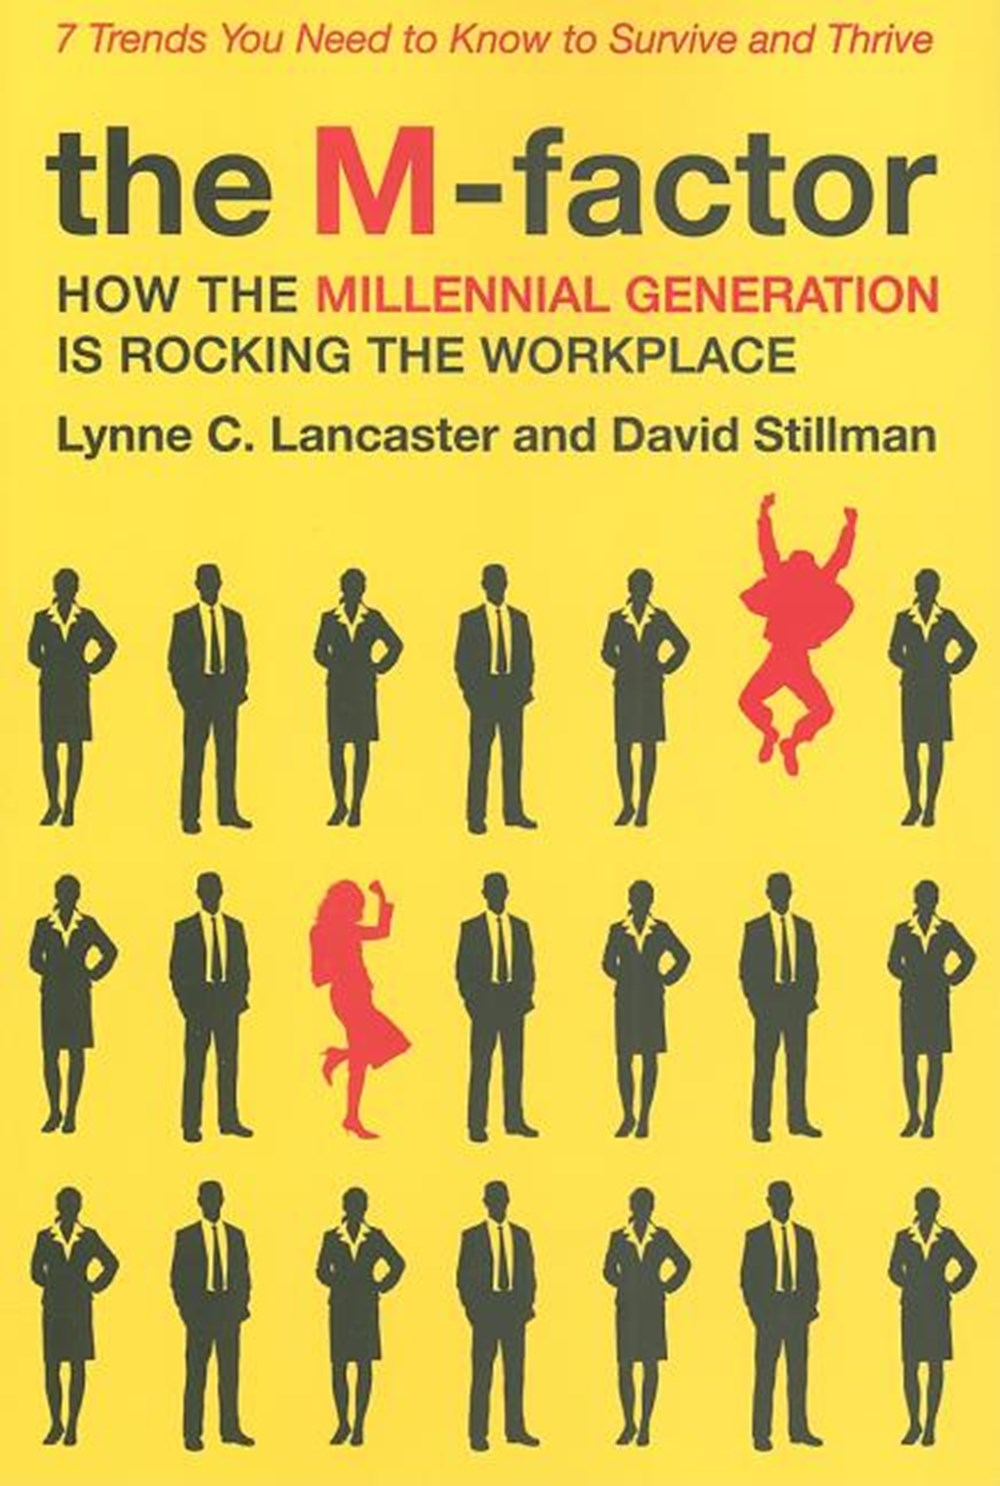 M-Factor How the Millennial Generation Is Rocking the Workplace